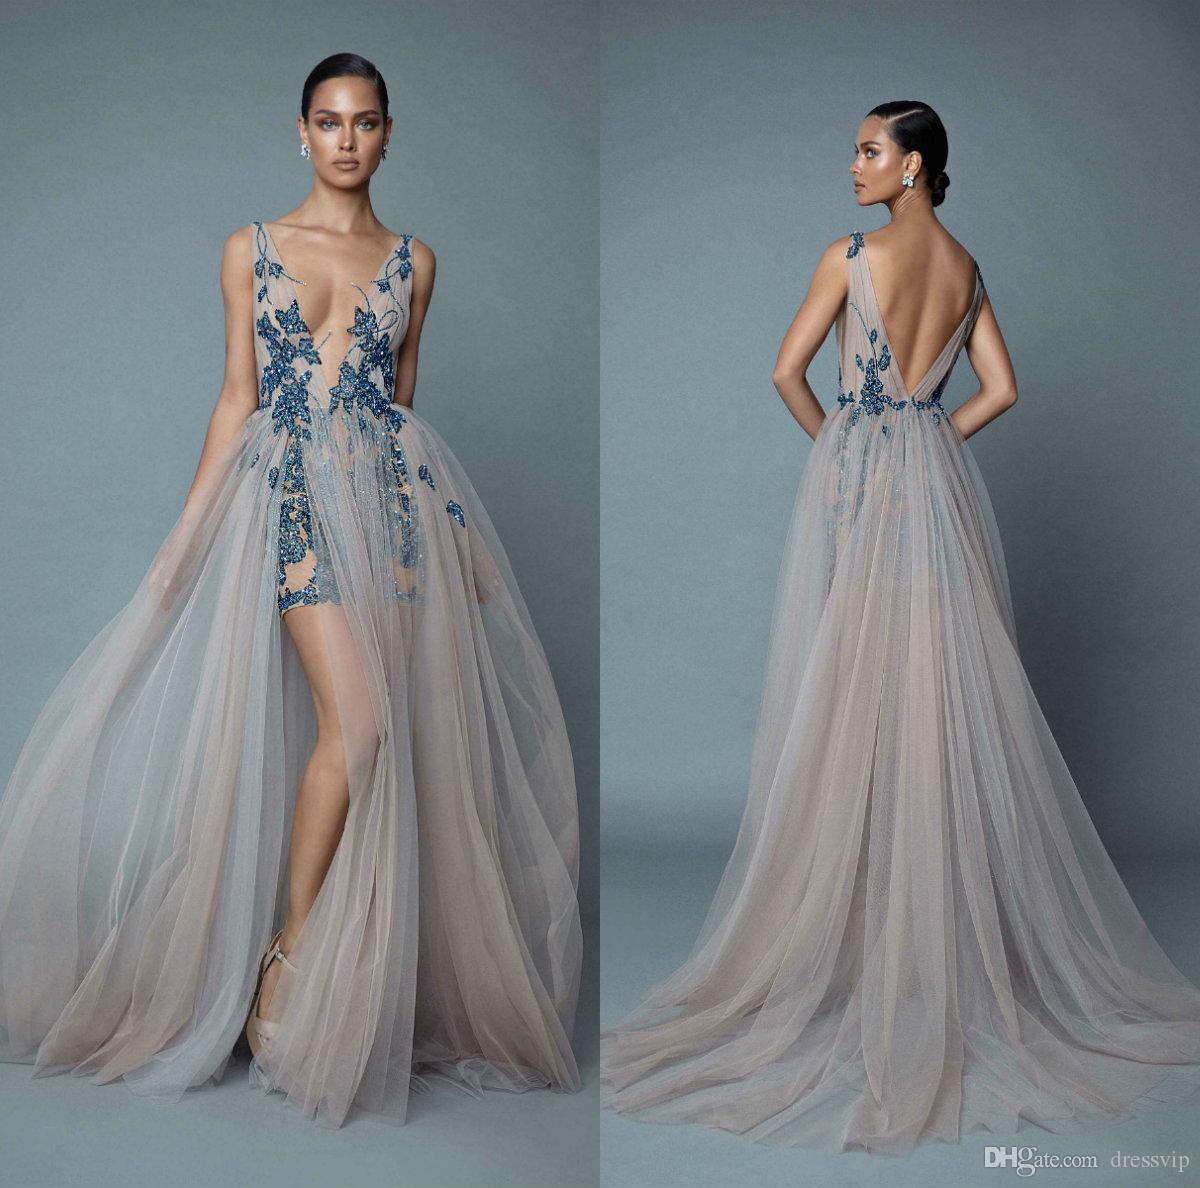 c6845e3b312a 2019 Berta Evening Dresses Deep V Neck Illusion Side Split Appliqued Lace  Beads Sexy Prom Dress Party Wear Custom Made Formal Occasion Gowns Fall  Evening ...